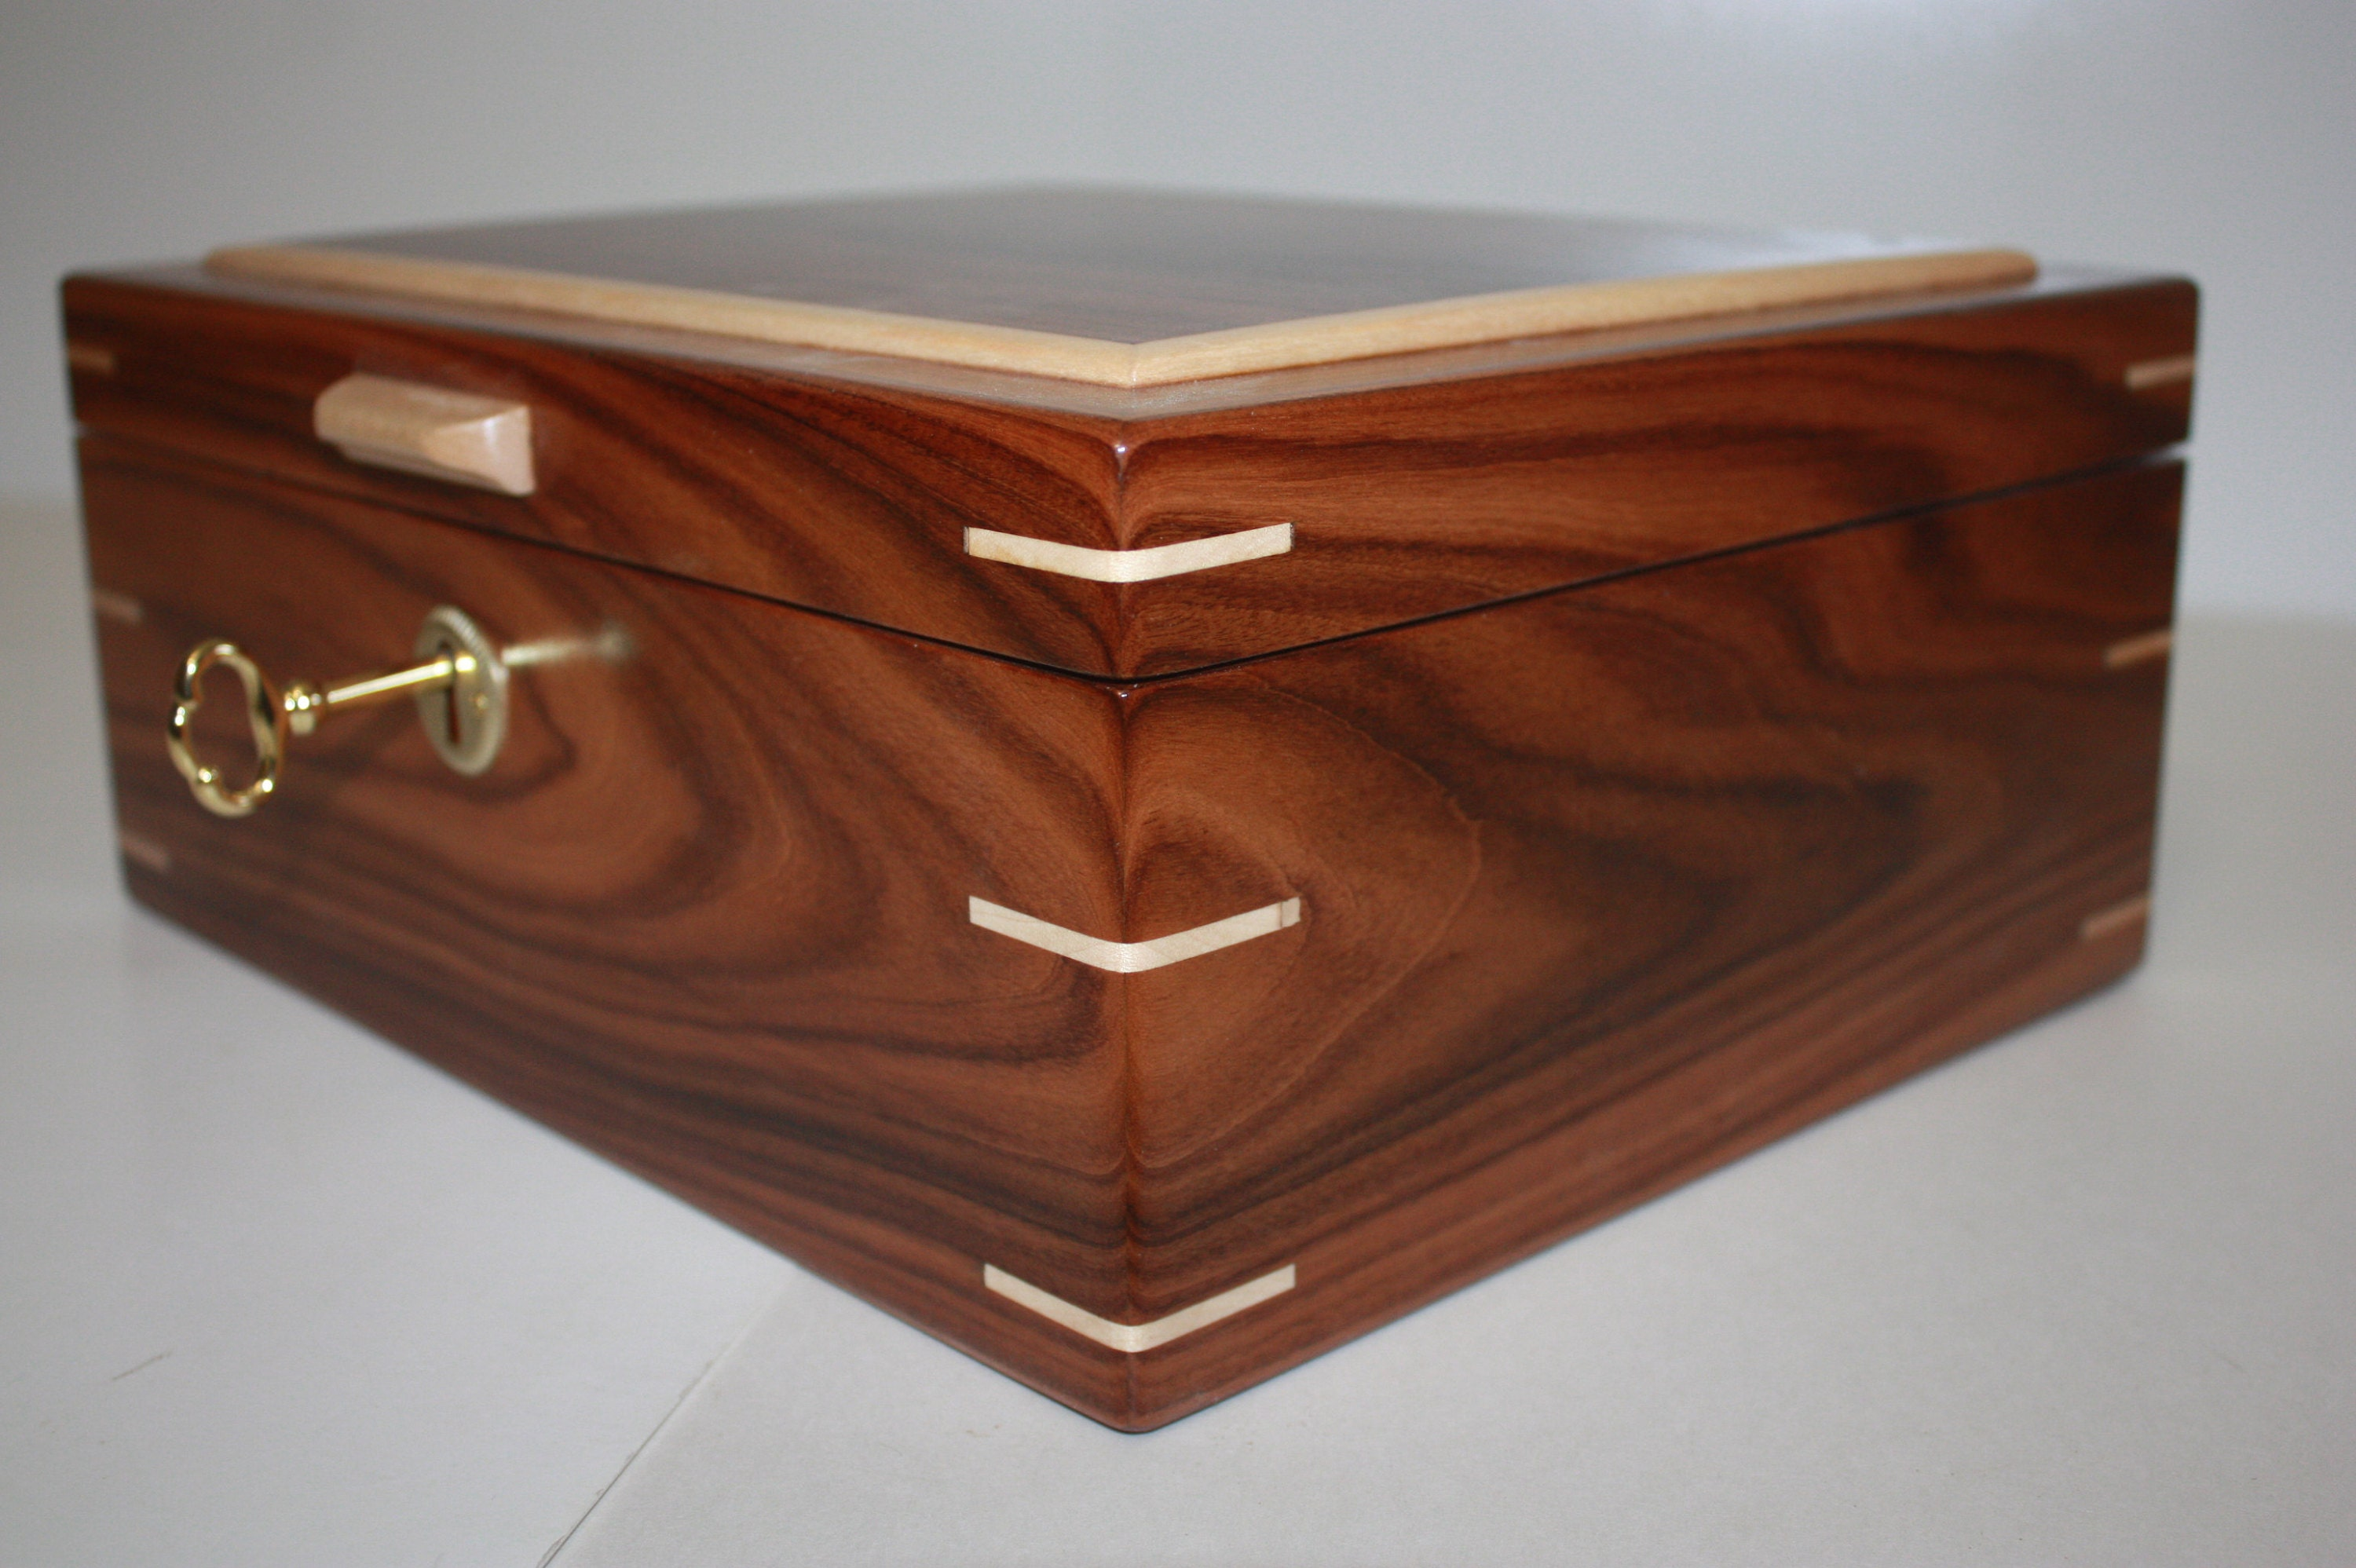 Morado/Bolivian Rosewood with Maple Splines Humidor For Sale